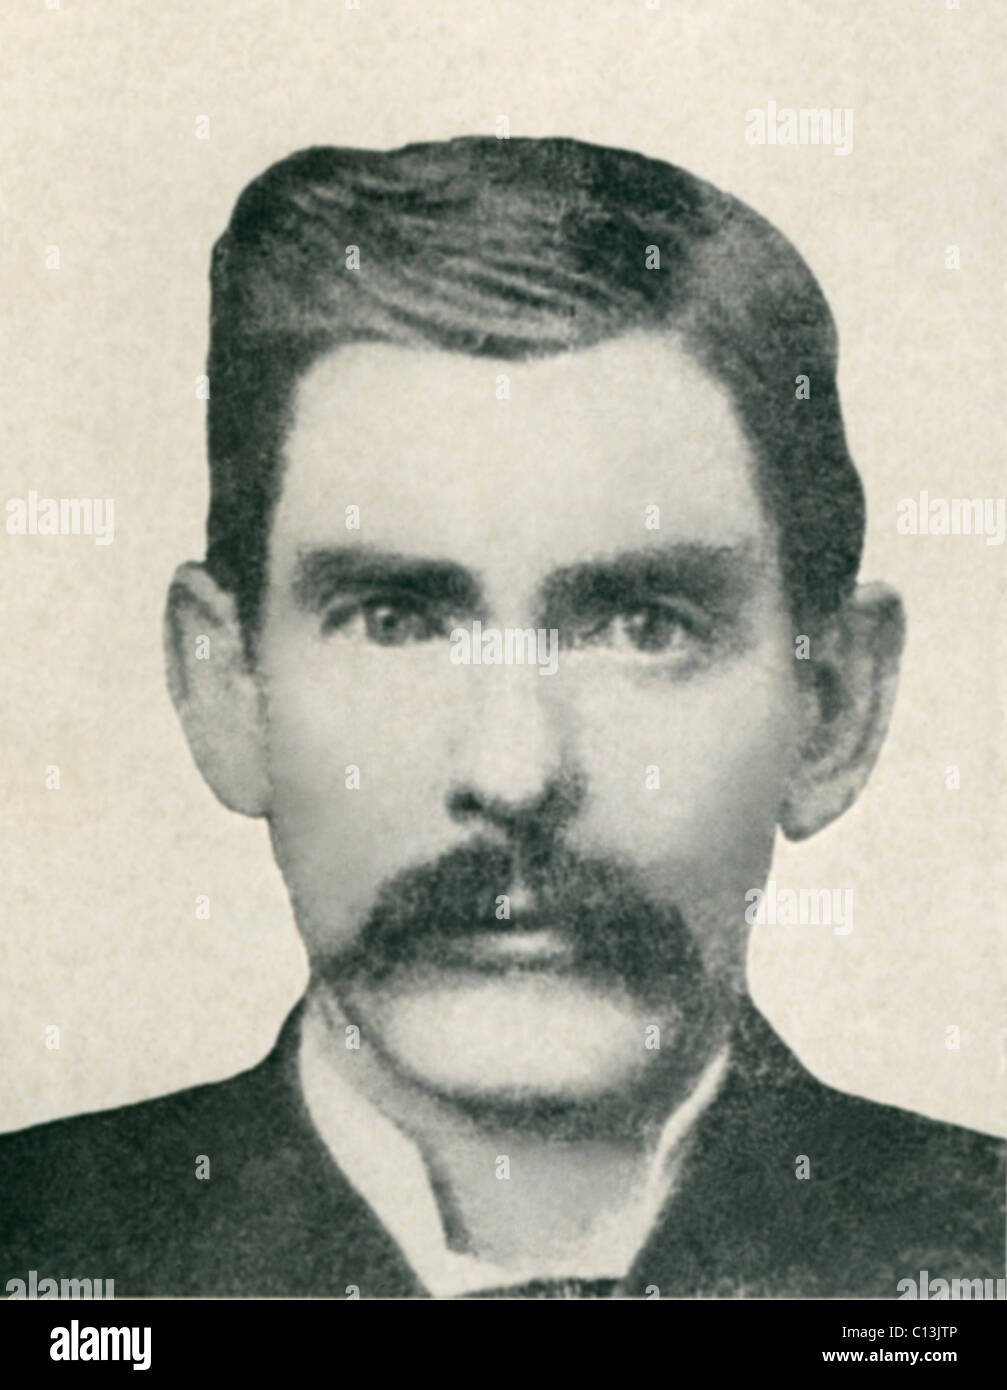 Dr. John H. Holliday (1851-1887) was an American dentist, gambler and gunfighter fought with Wyatt Earp in the Gunfight - Stock Image